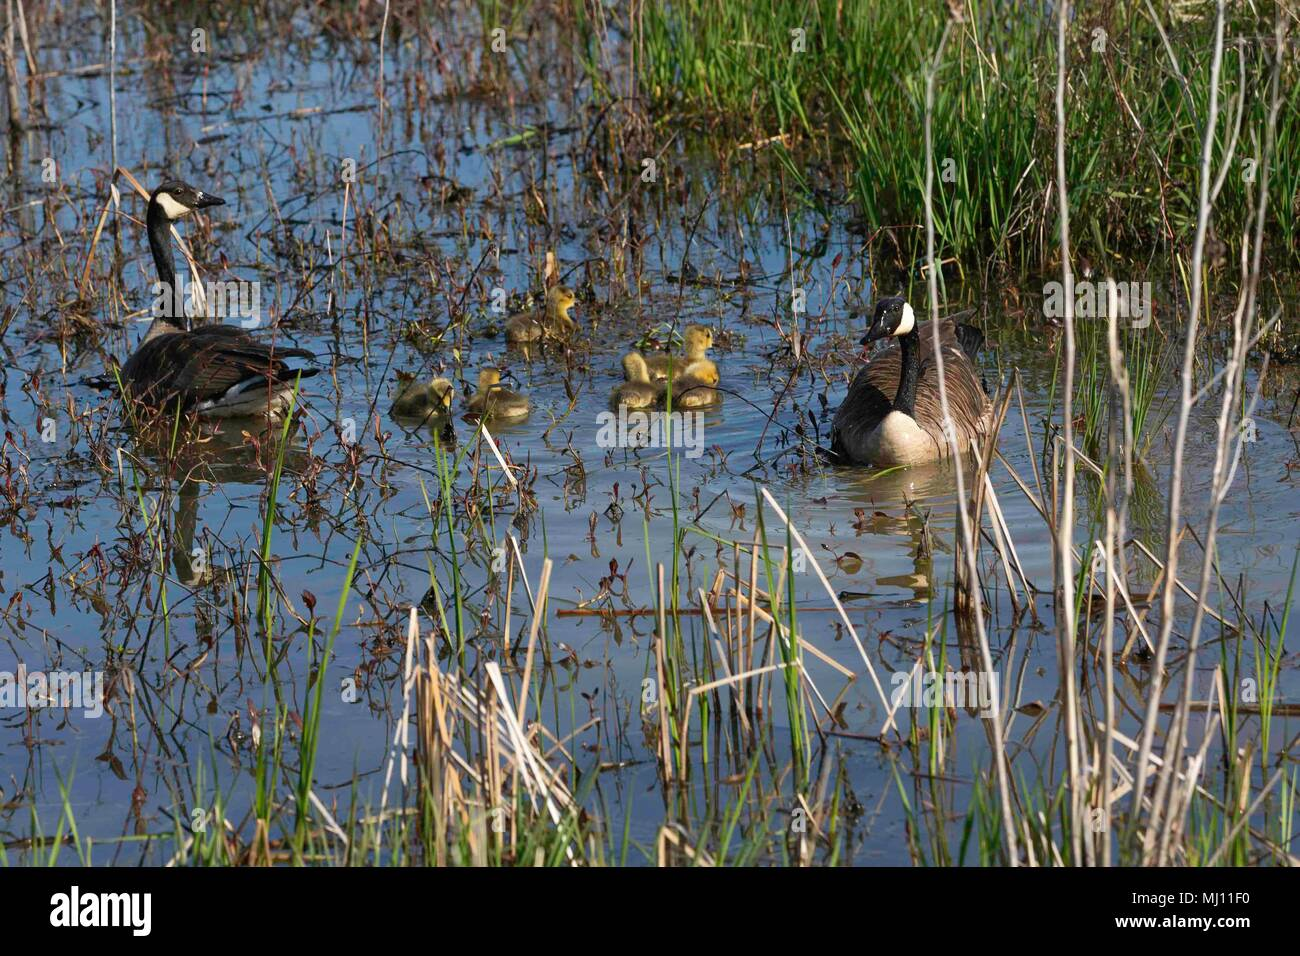 Canada Geese watching over their young at Magee Marsh - Stock Image